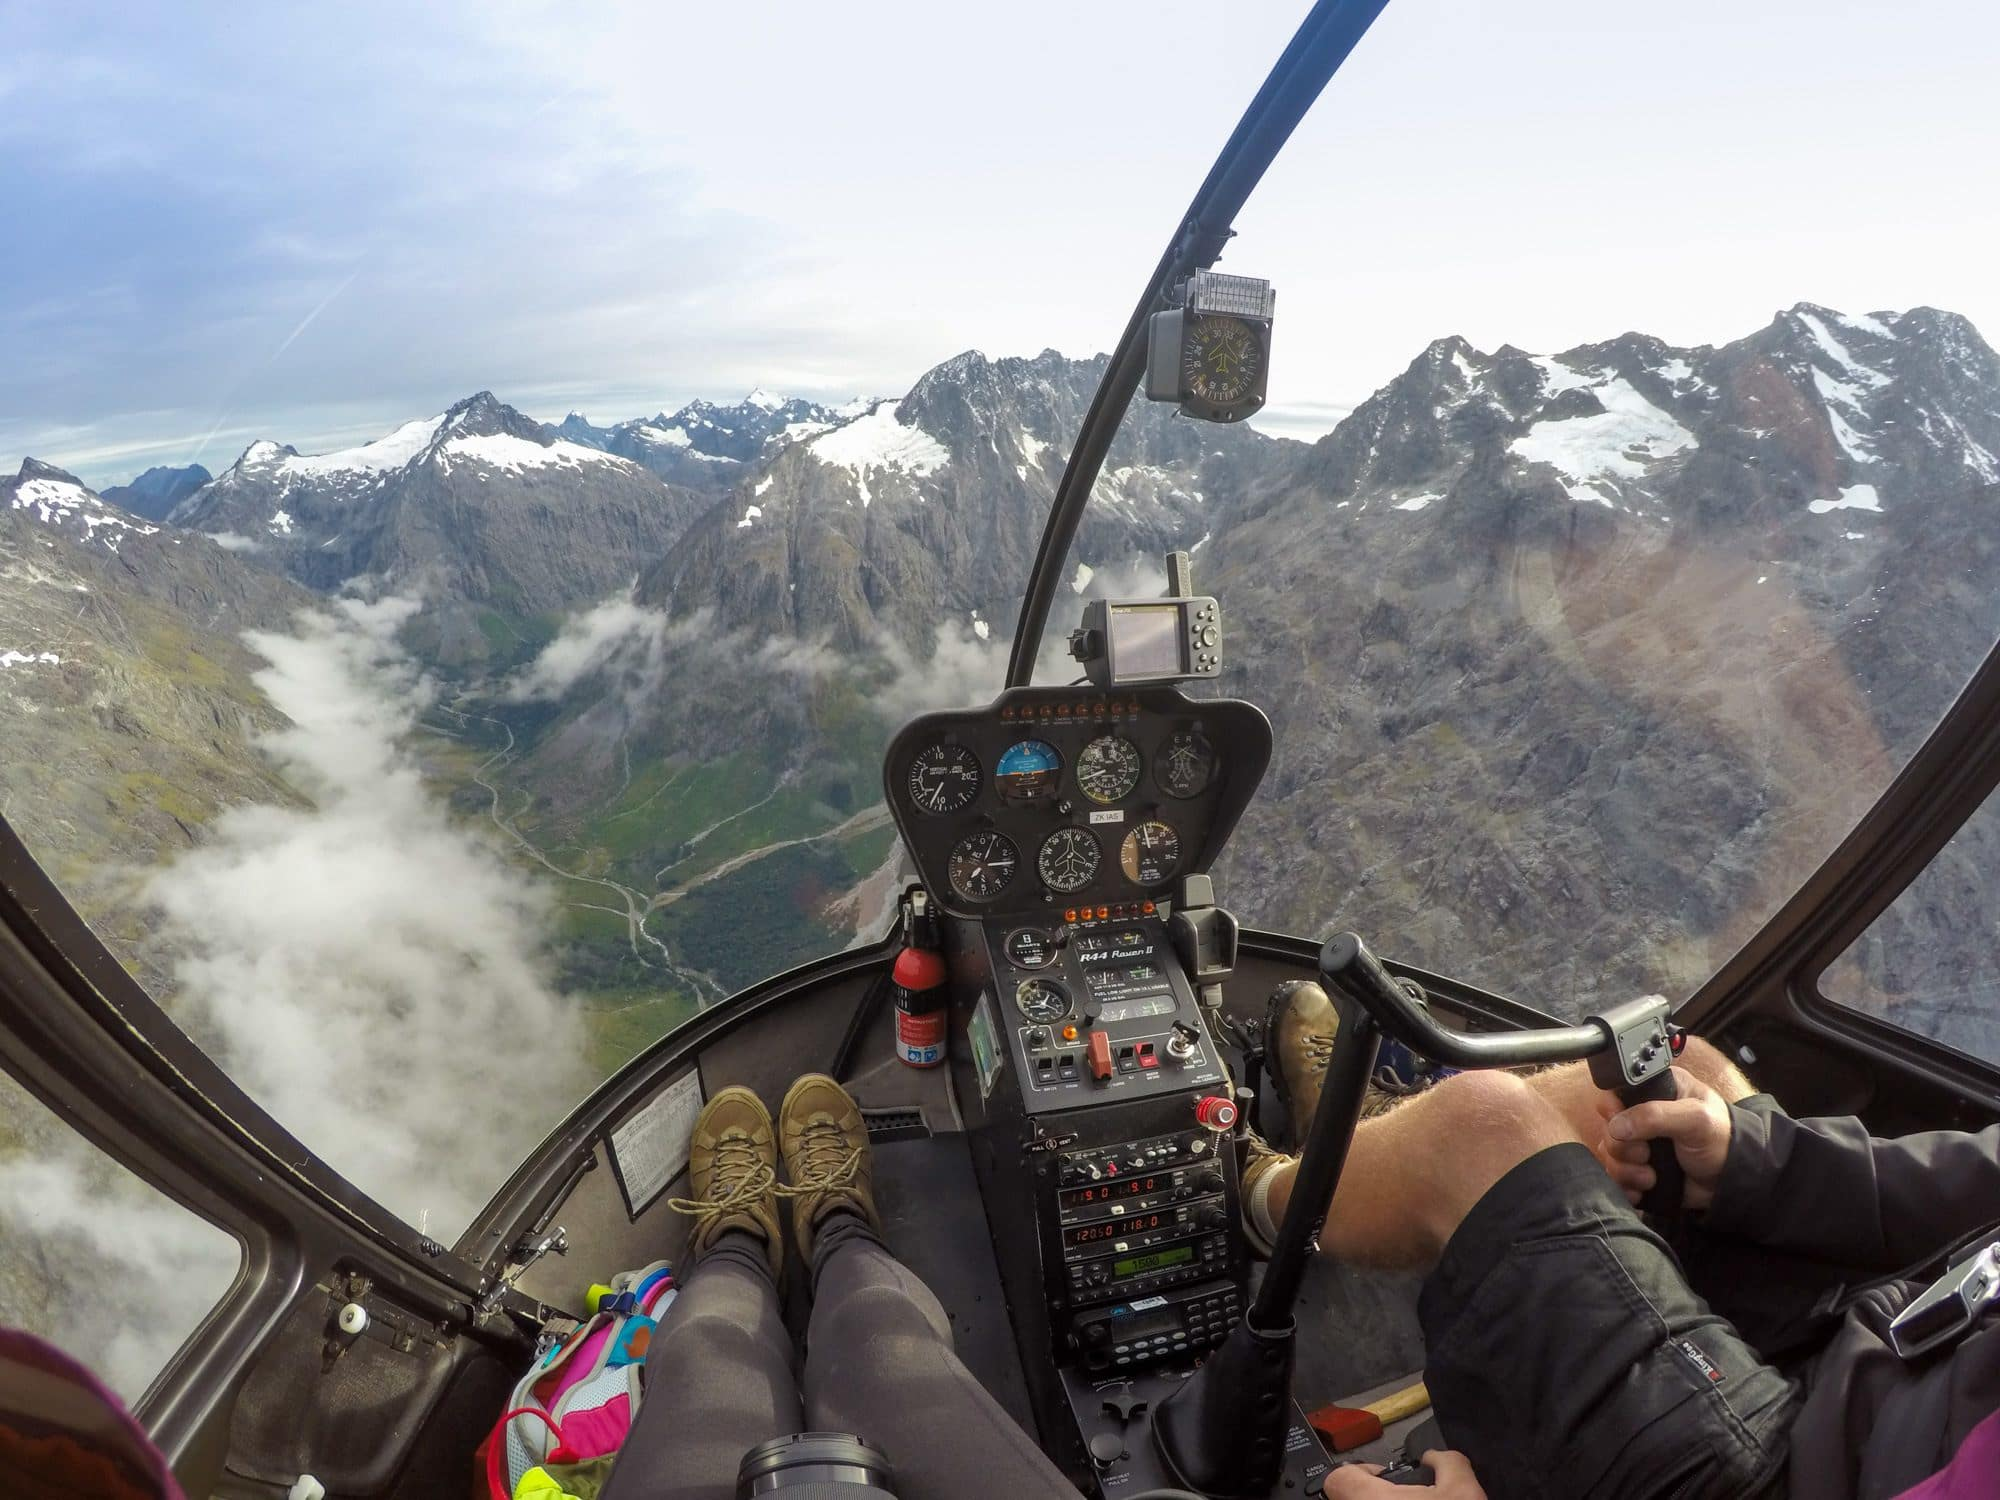 Milford Sound Helicopter Flight above New Zealand's Fiordland National Park